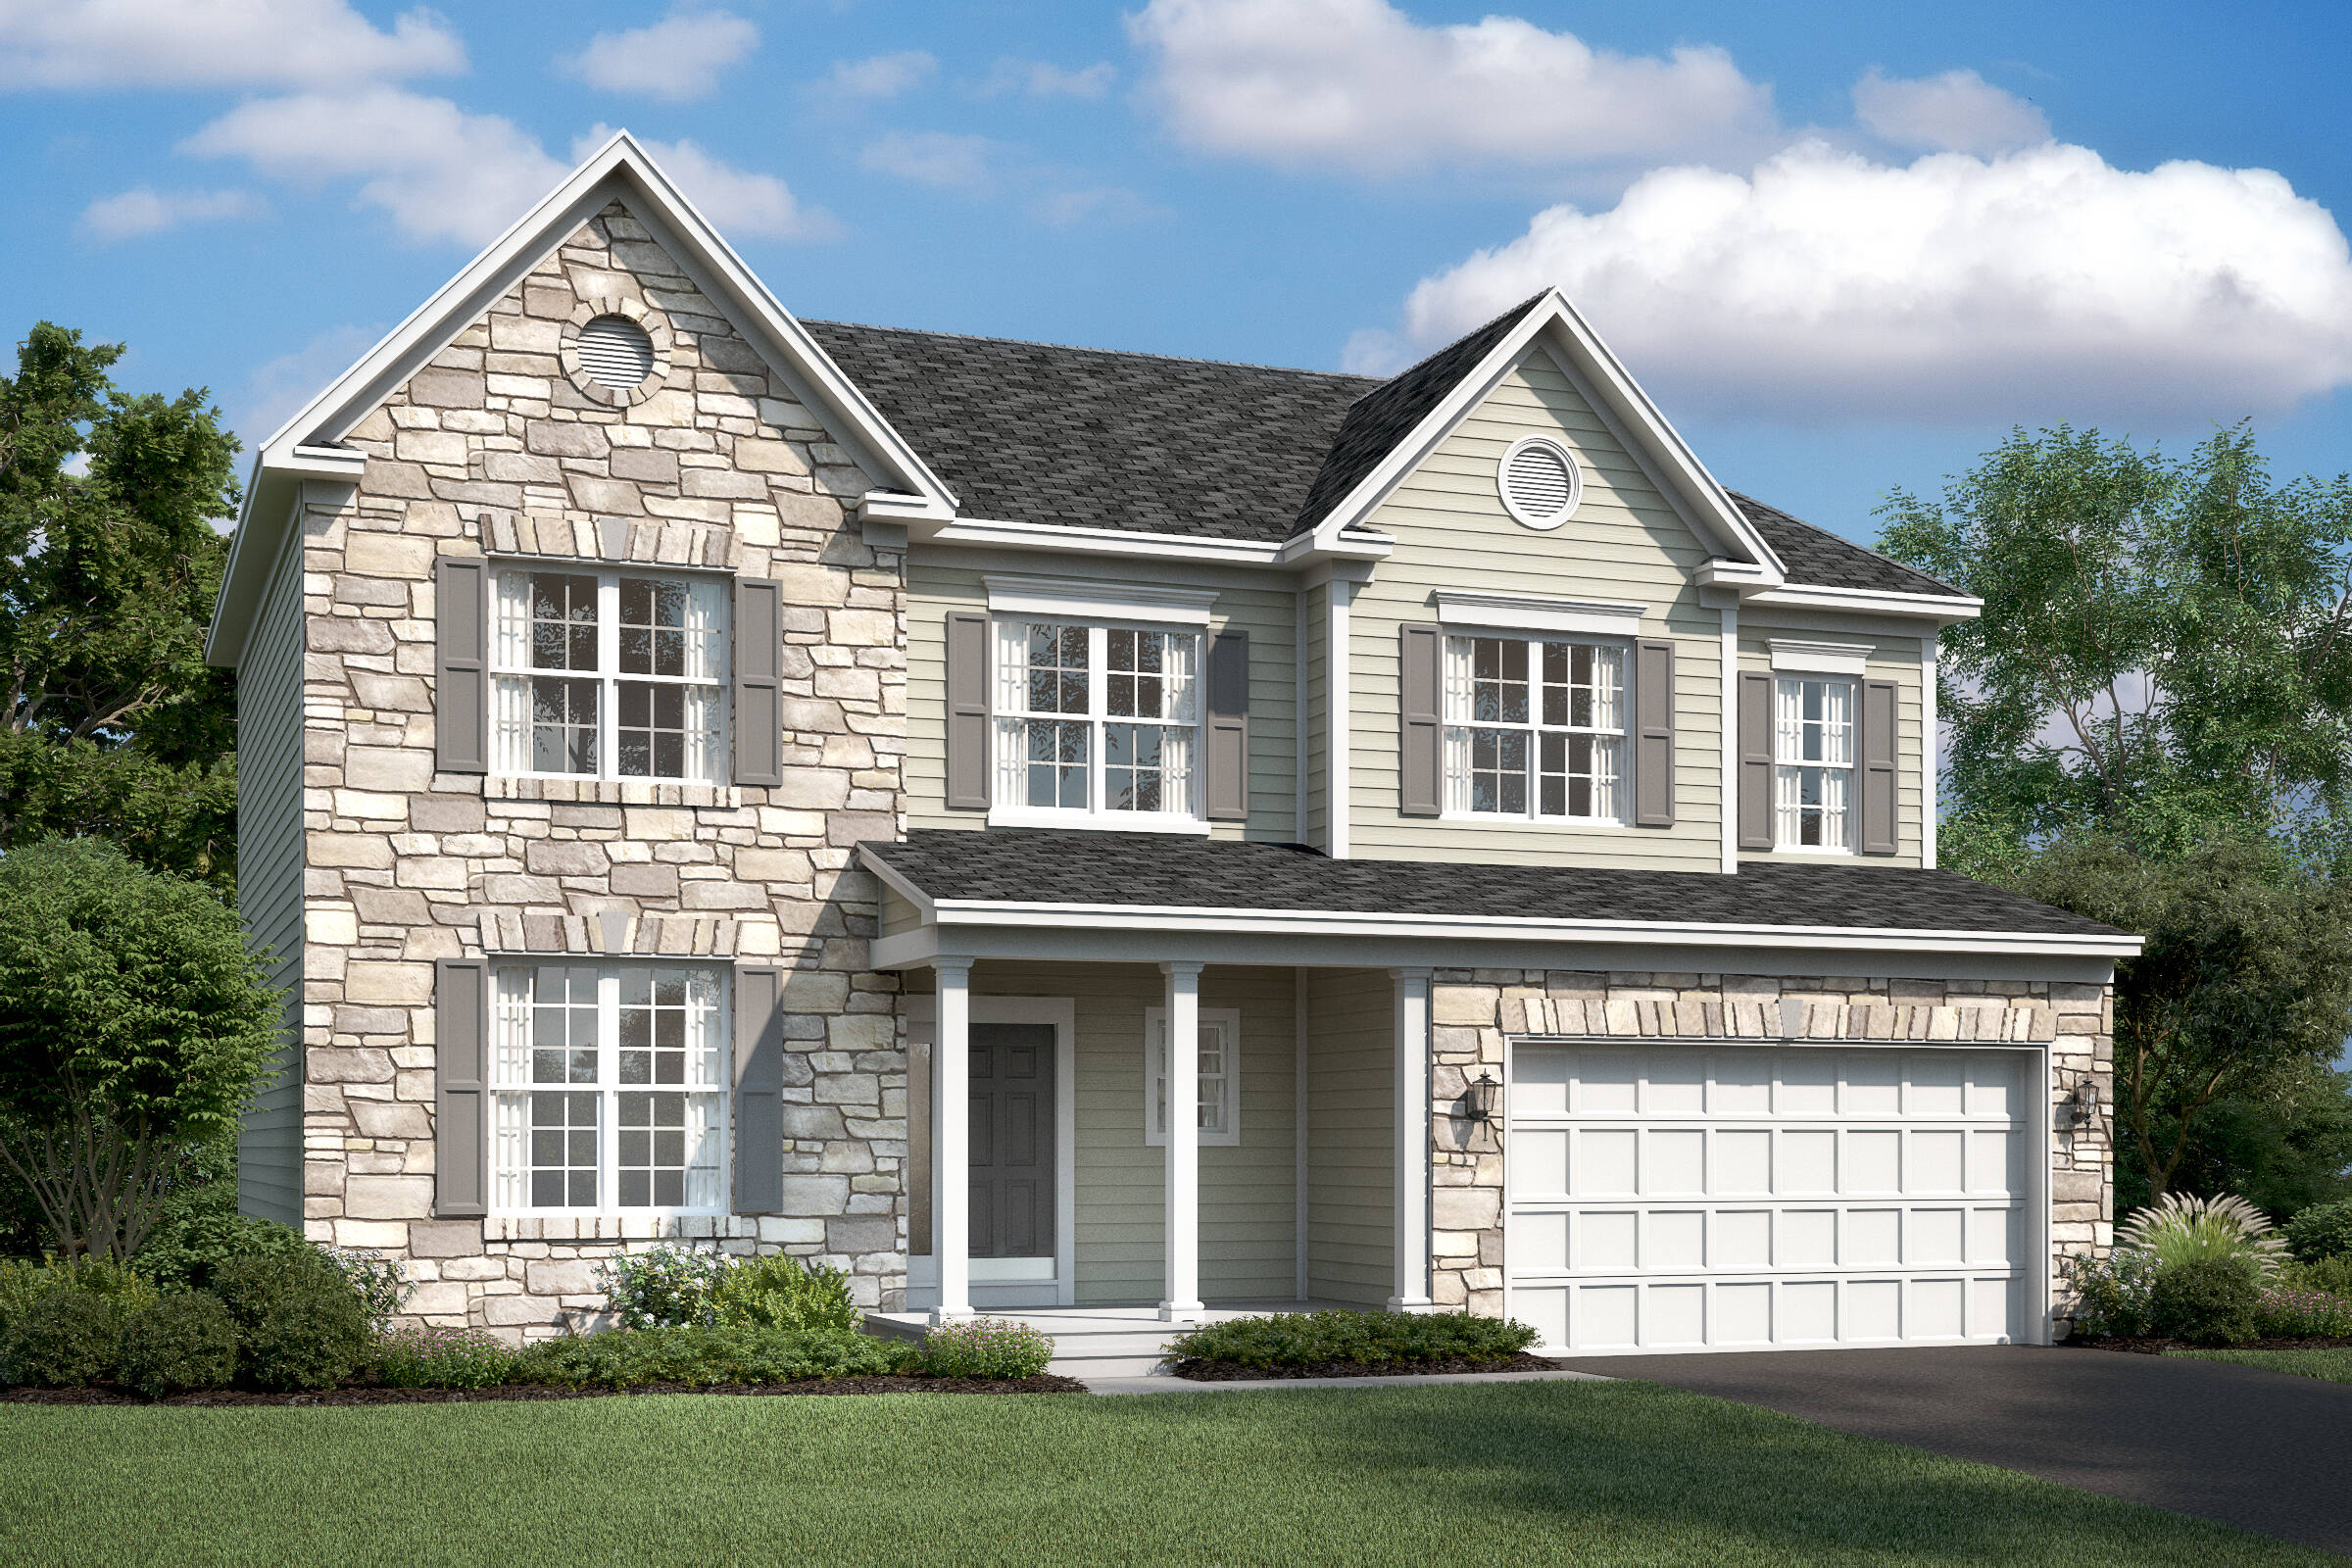 hancock III georgian new homes at stone mill in maryland